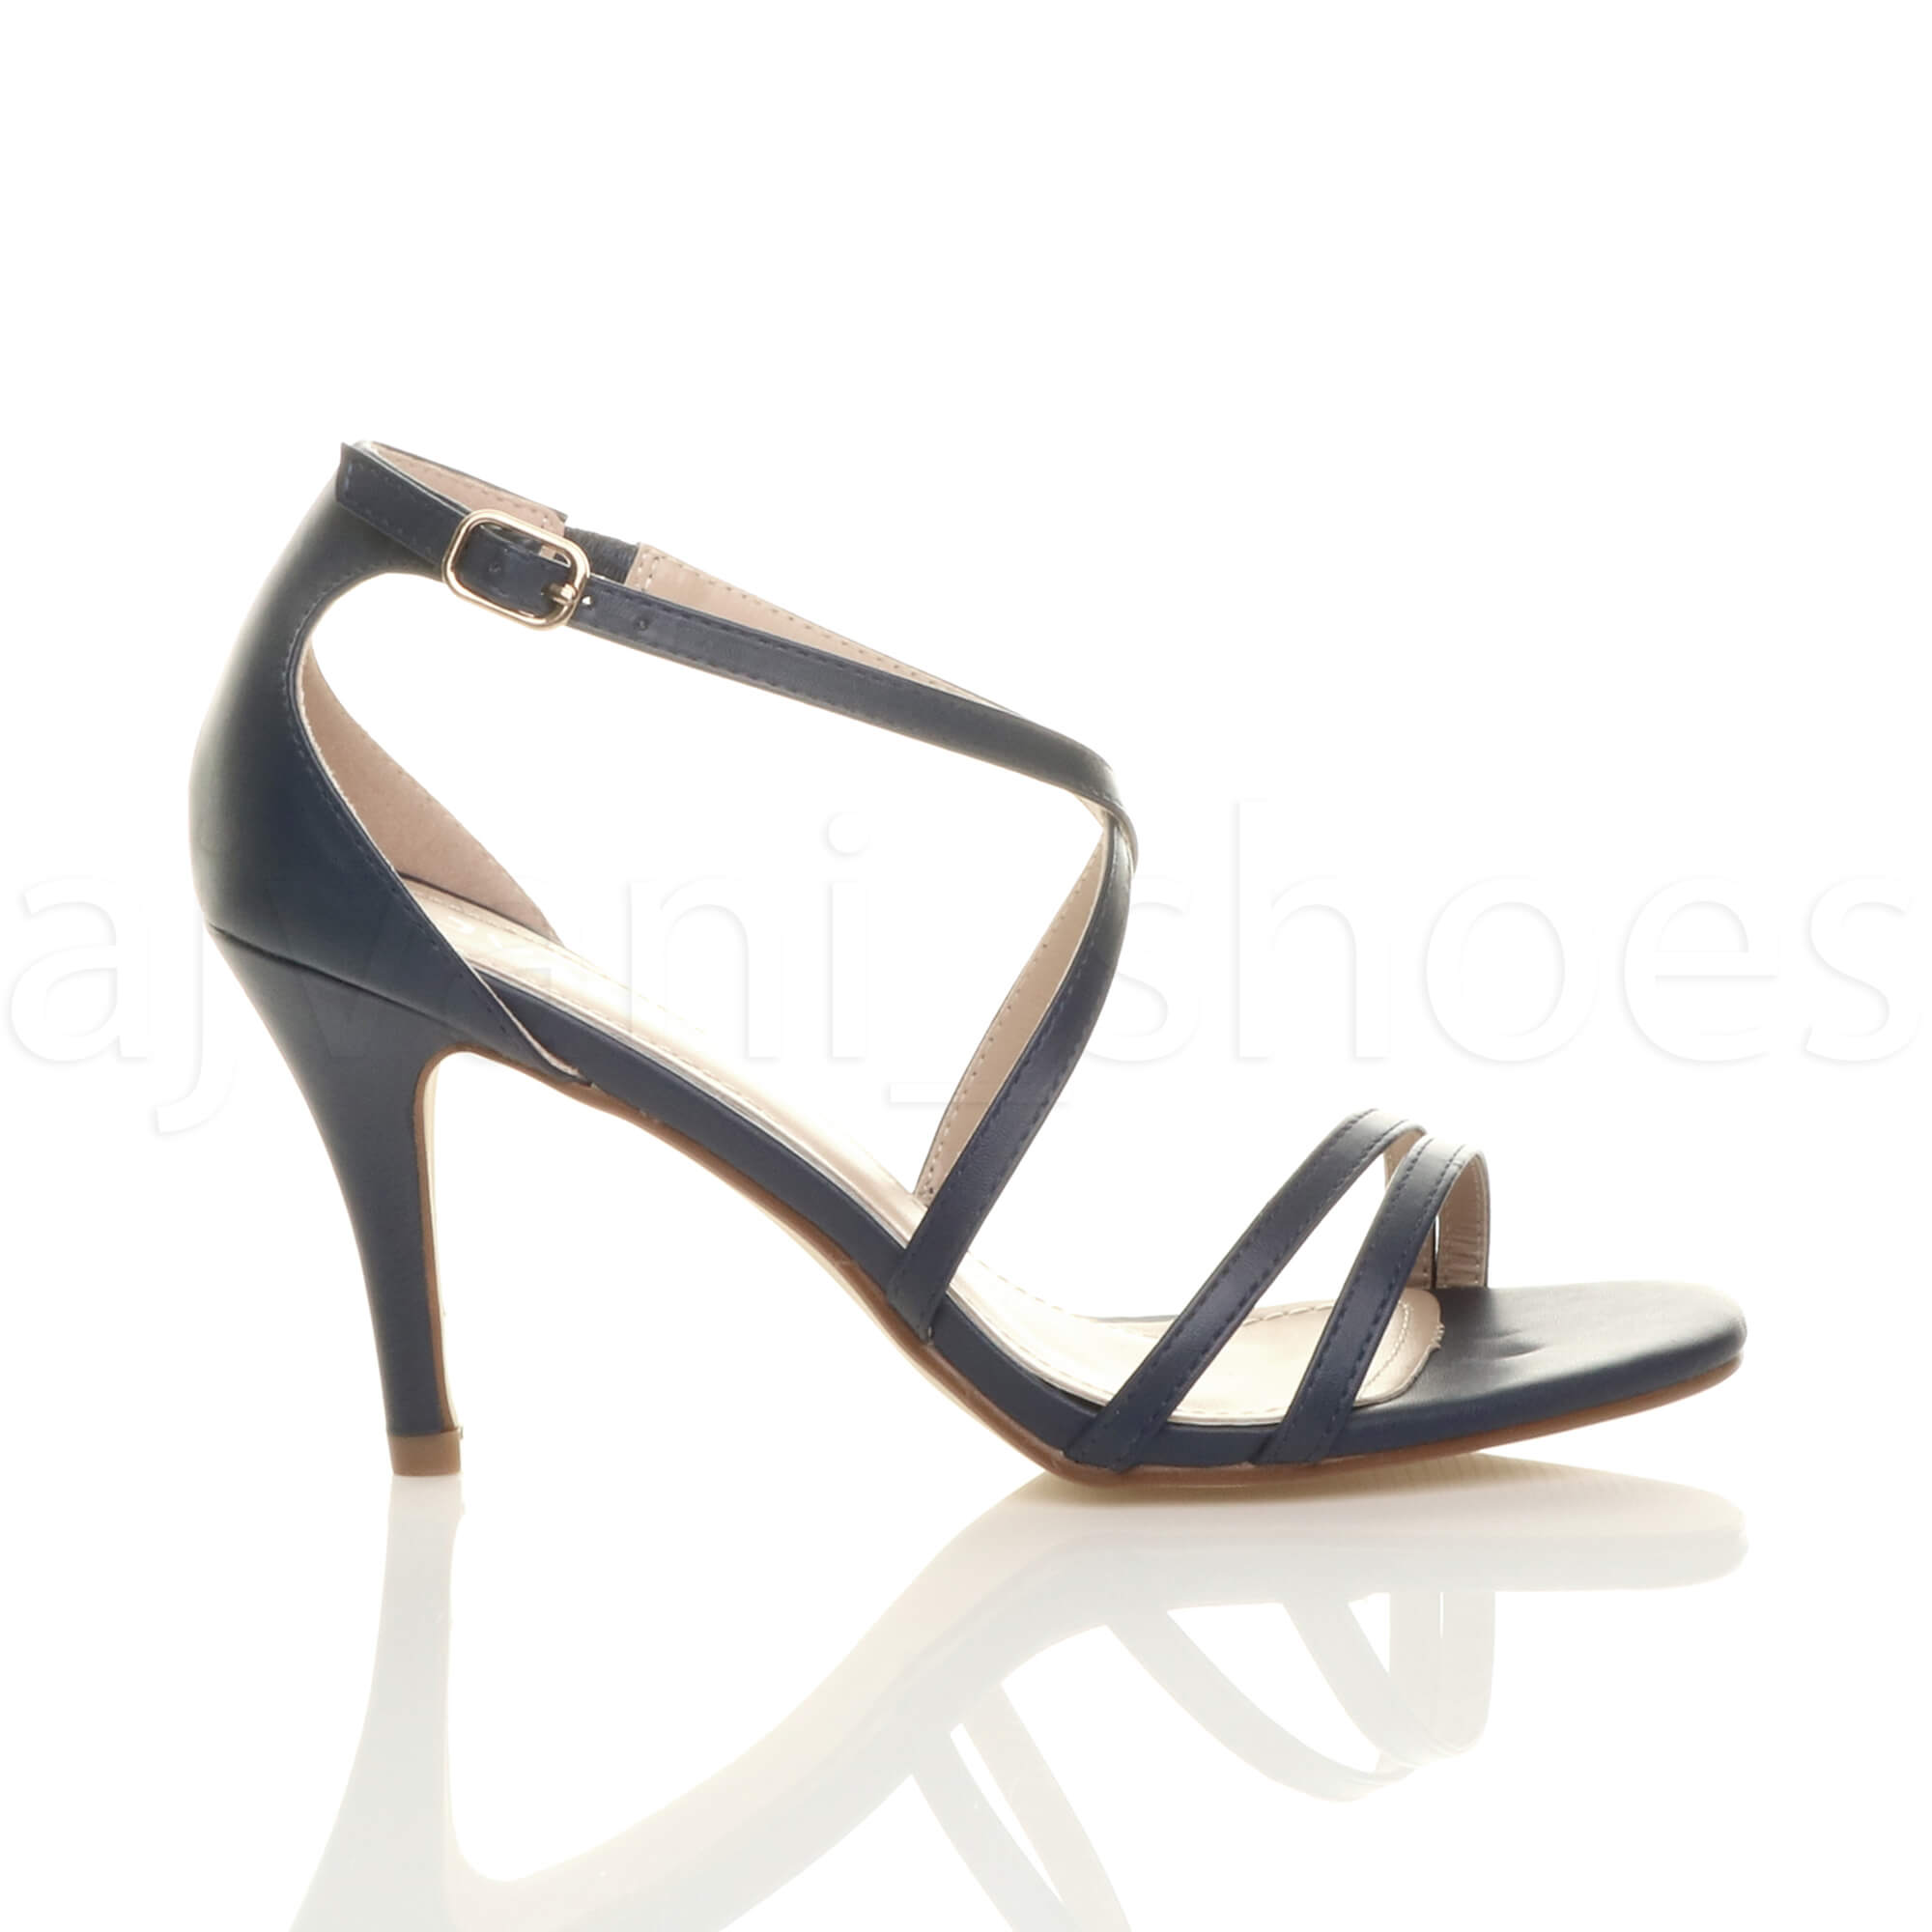 WOMENS-LADIES-MID-HIGH-HEEL-STRAPPY-CROSSOVER-WEDDING-PROM-SANDALS-SHOES-SIZE thumbnail 80